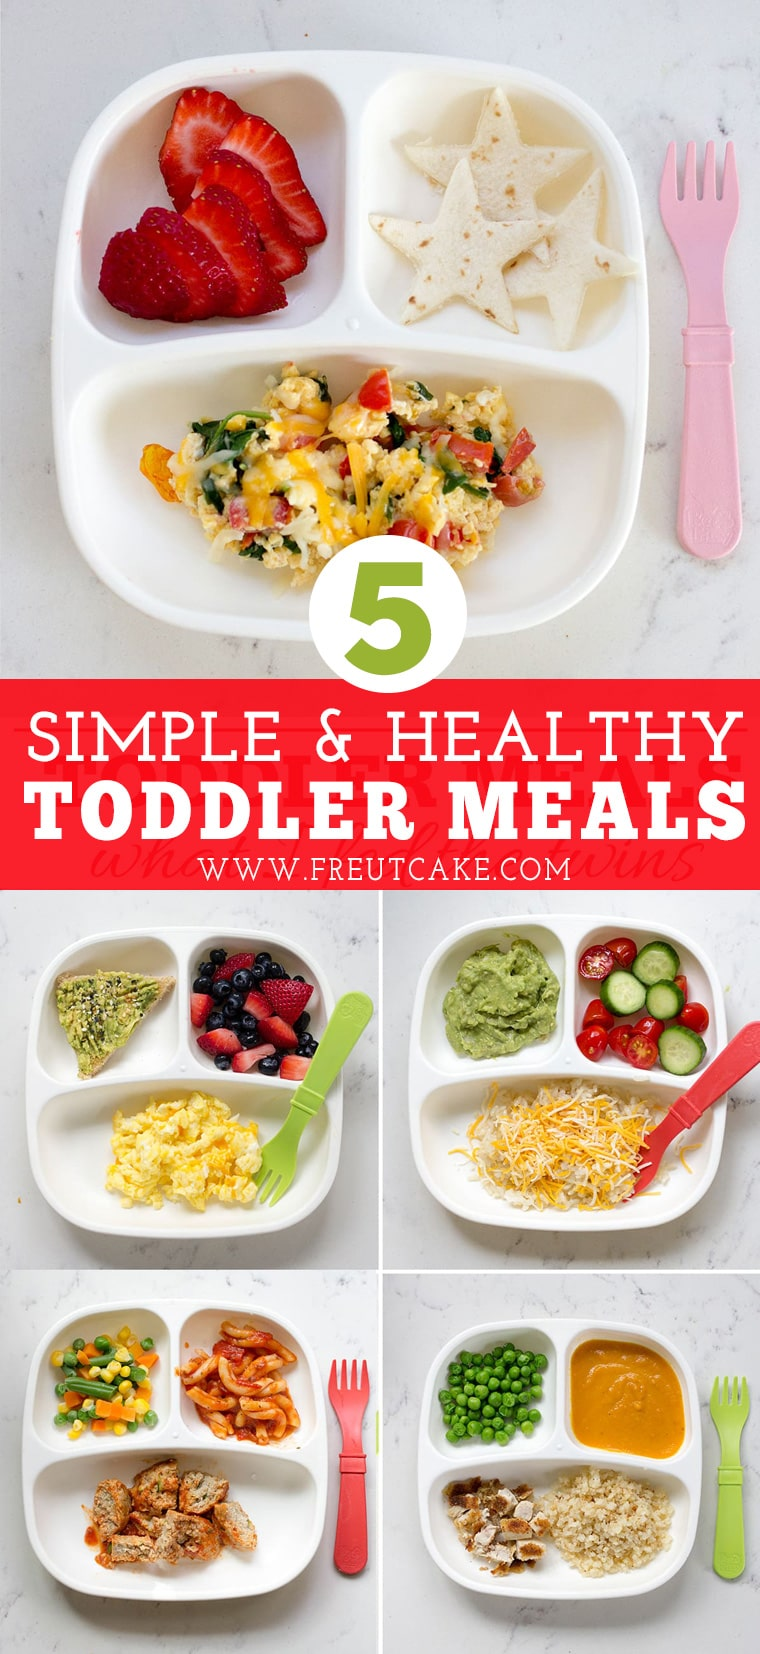 Simple and Healthy Toddler Meal Ideas